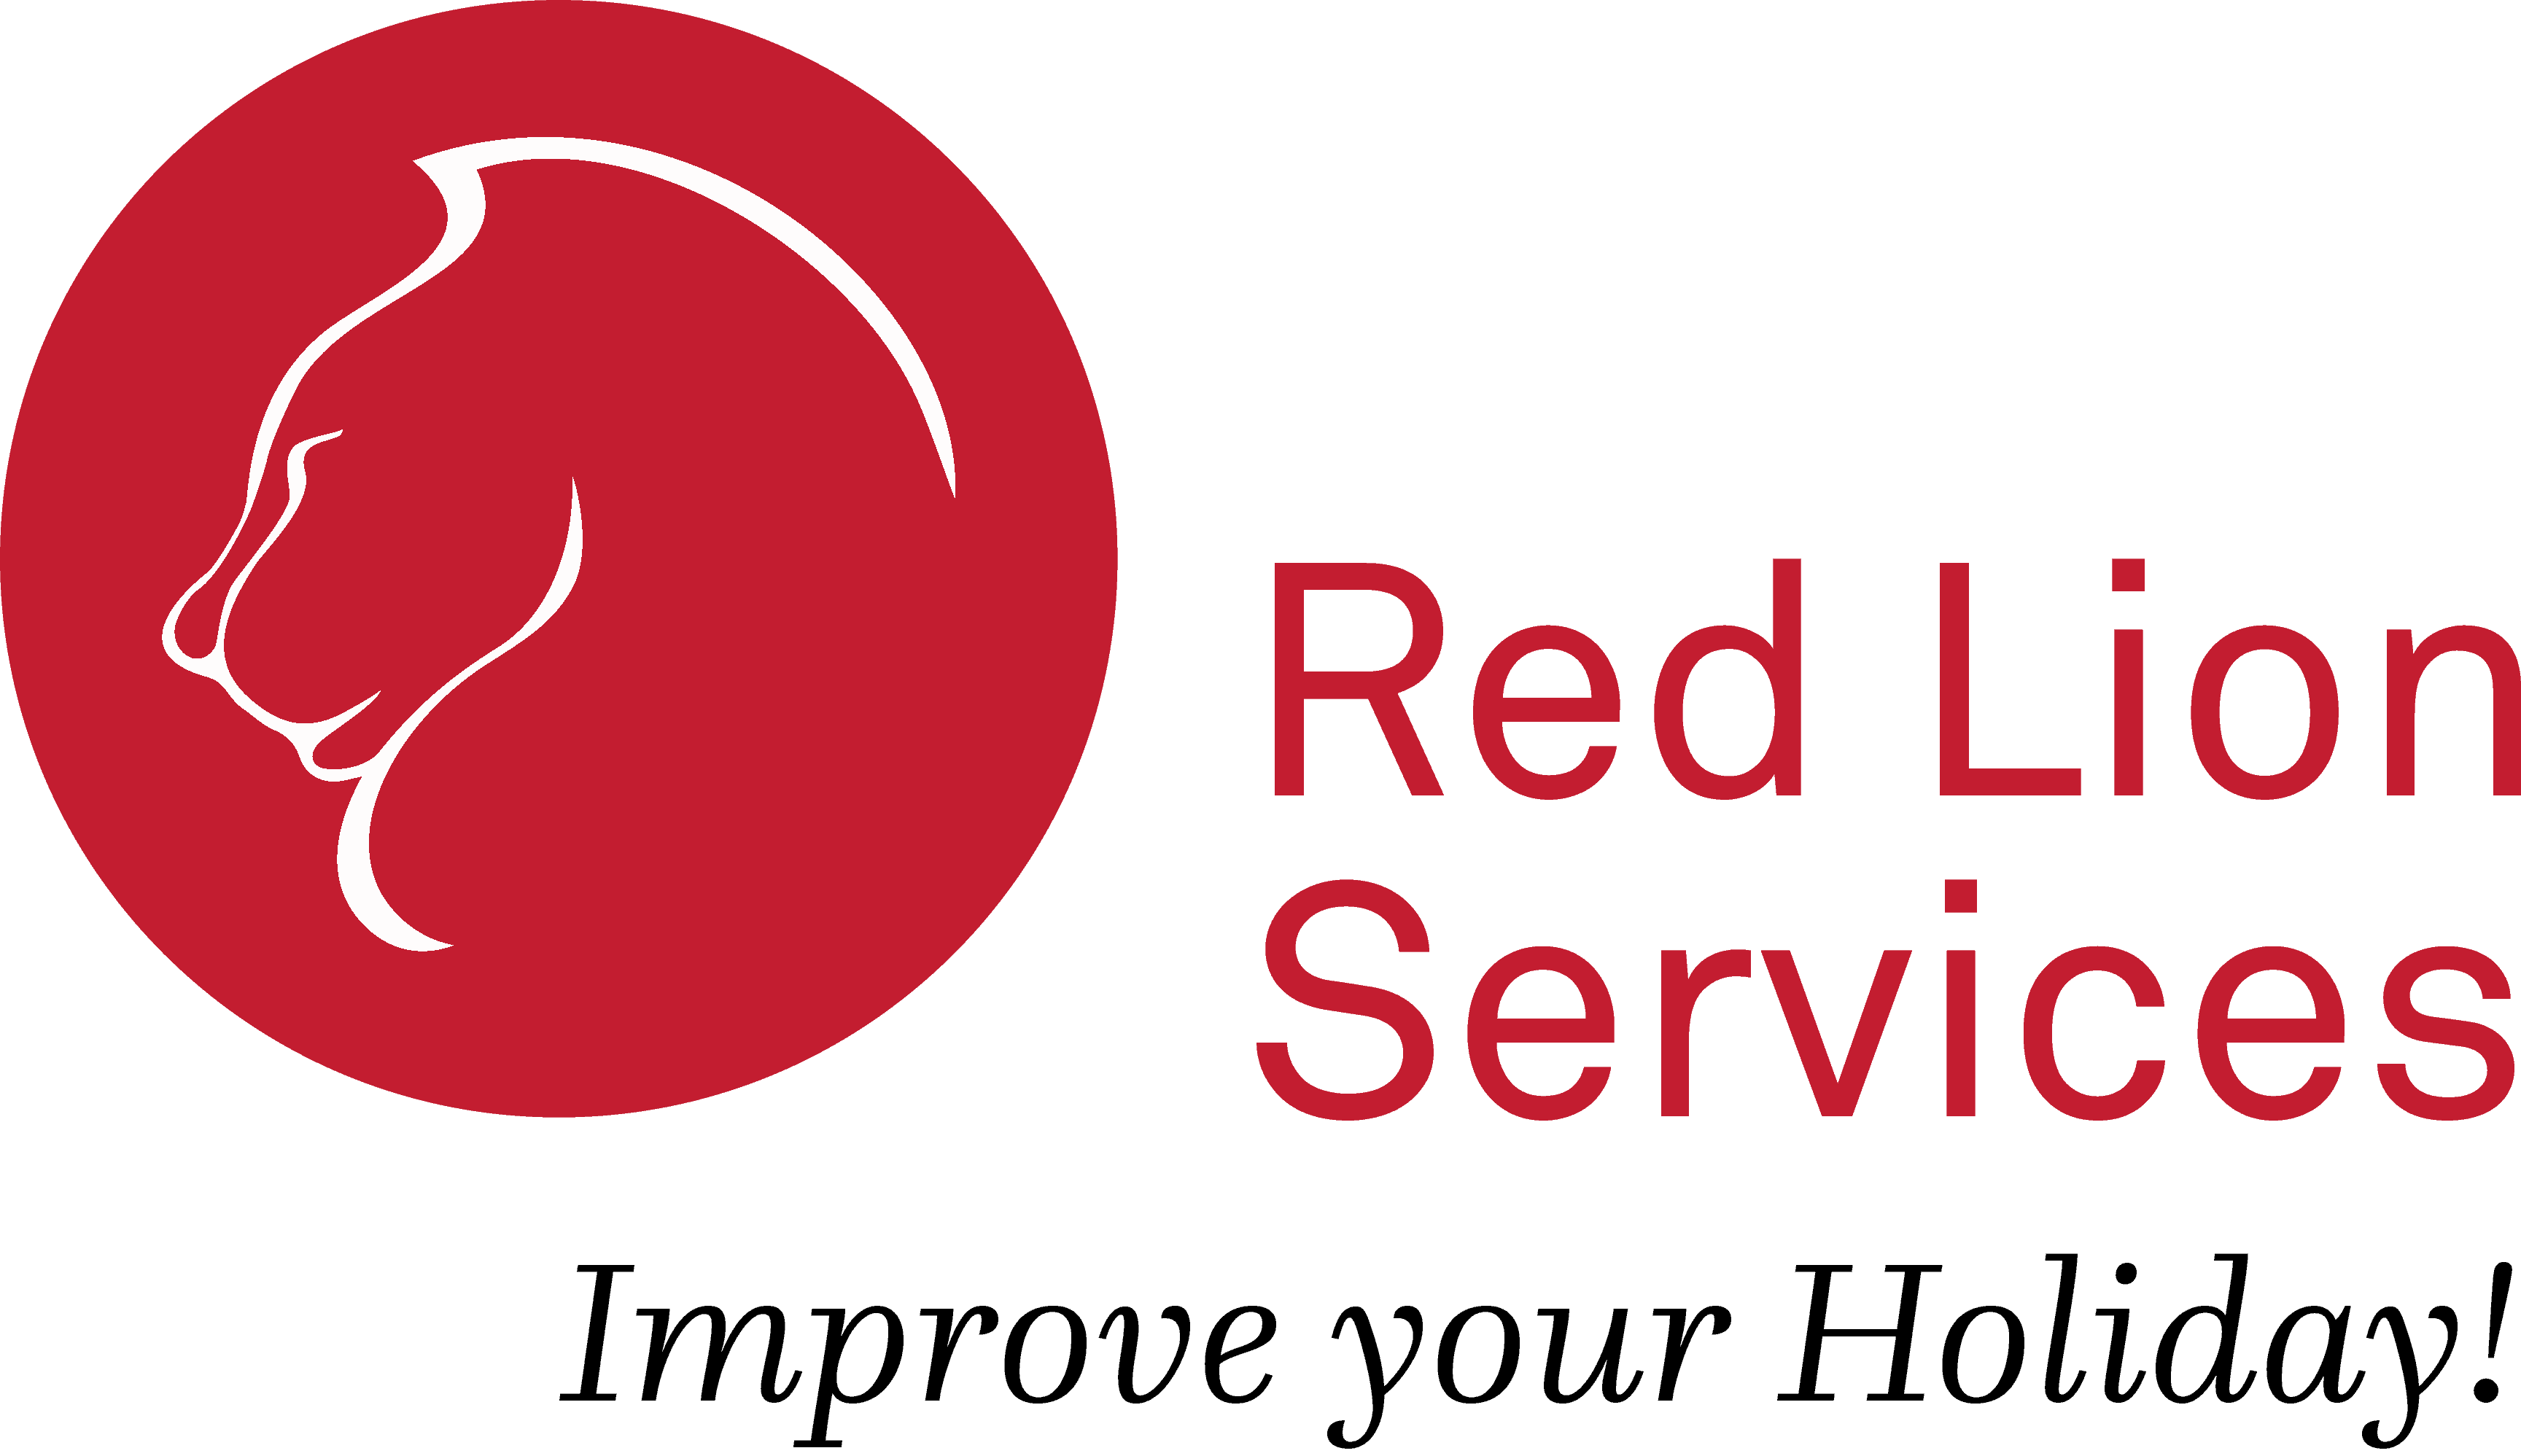 Red Lion Services